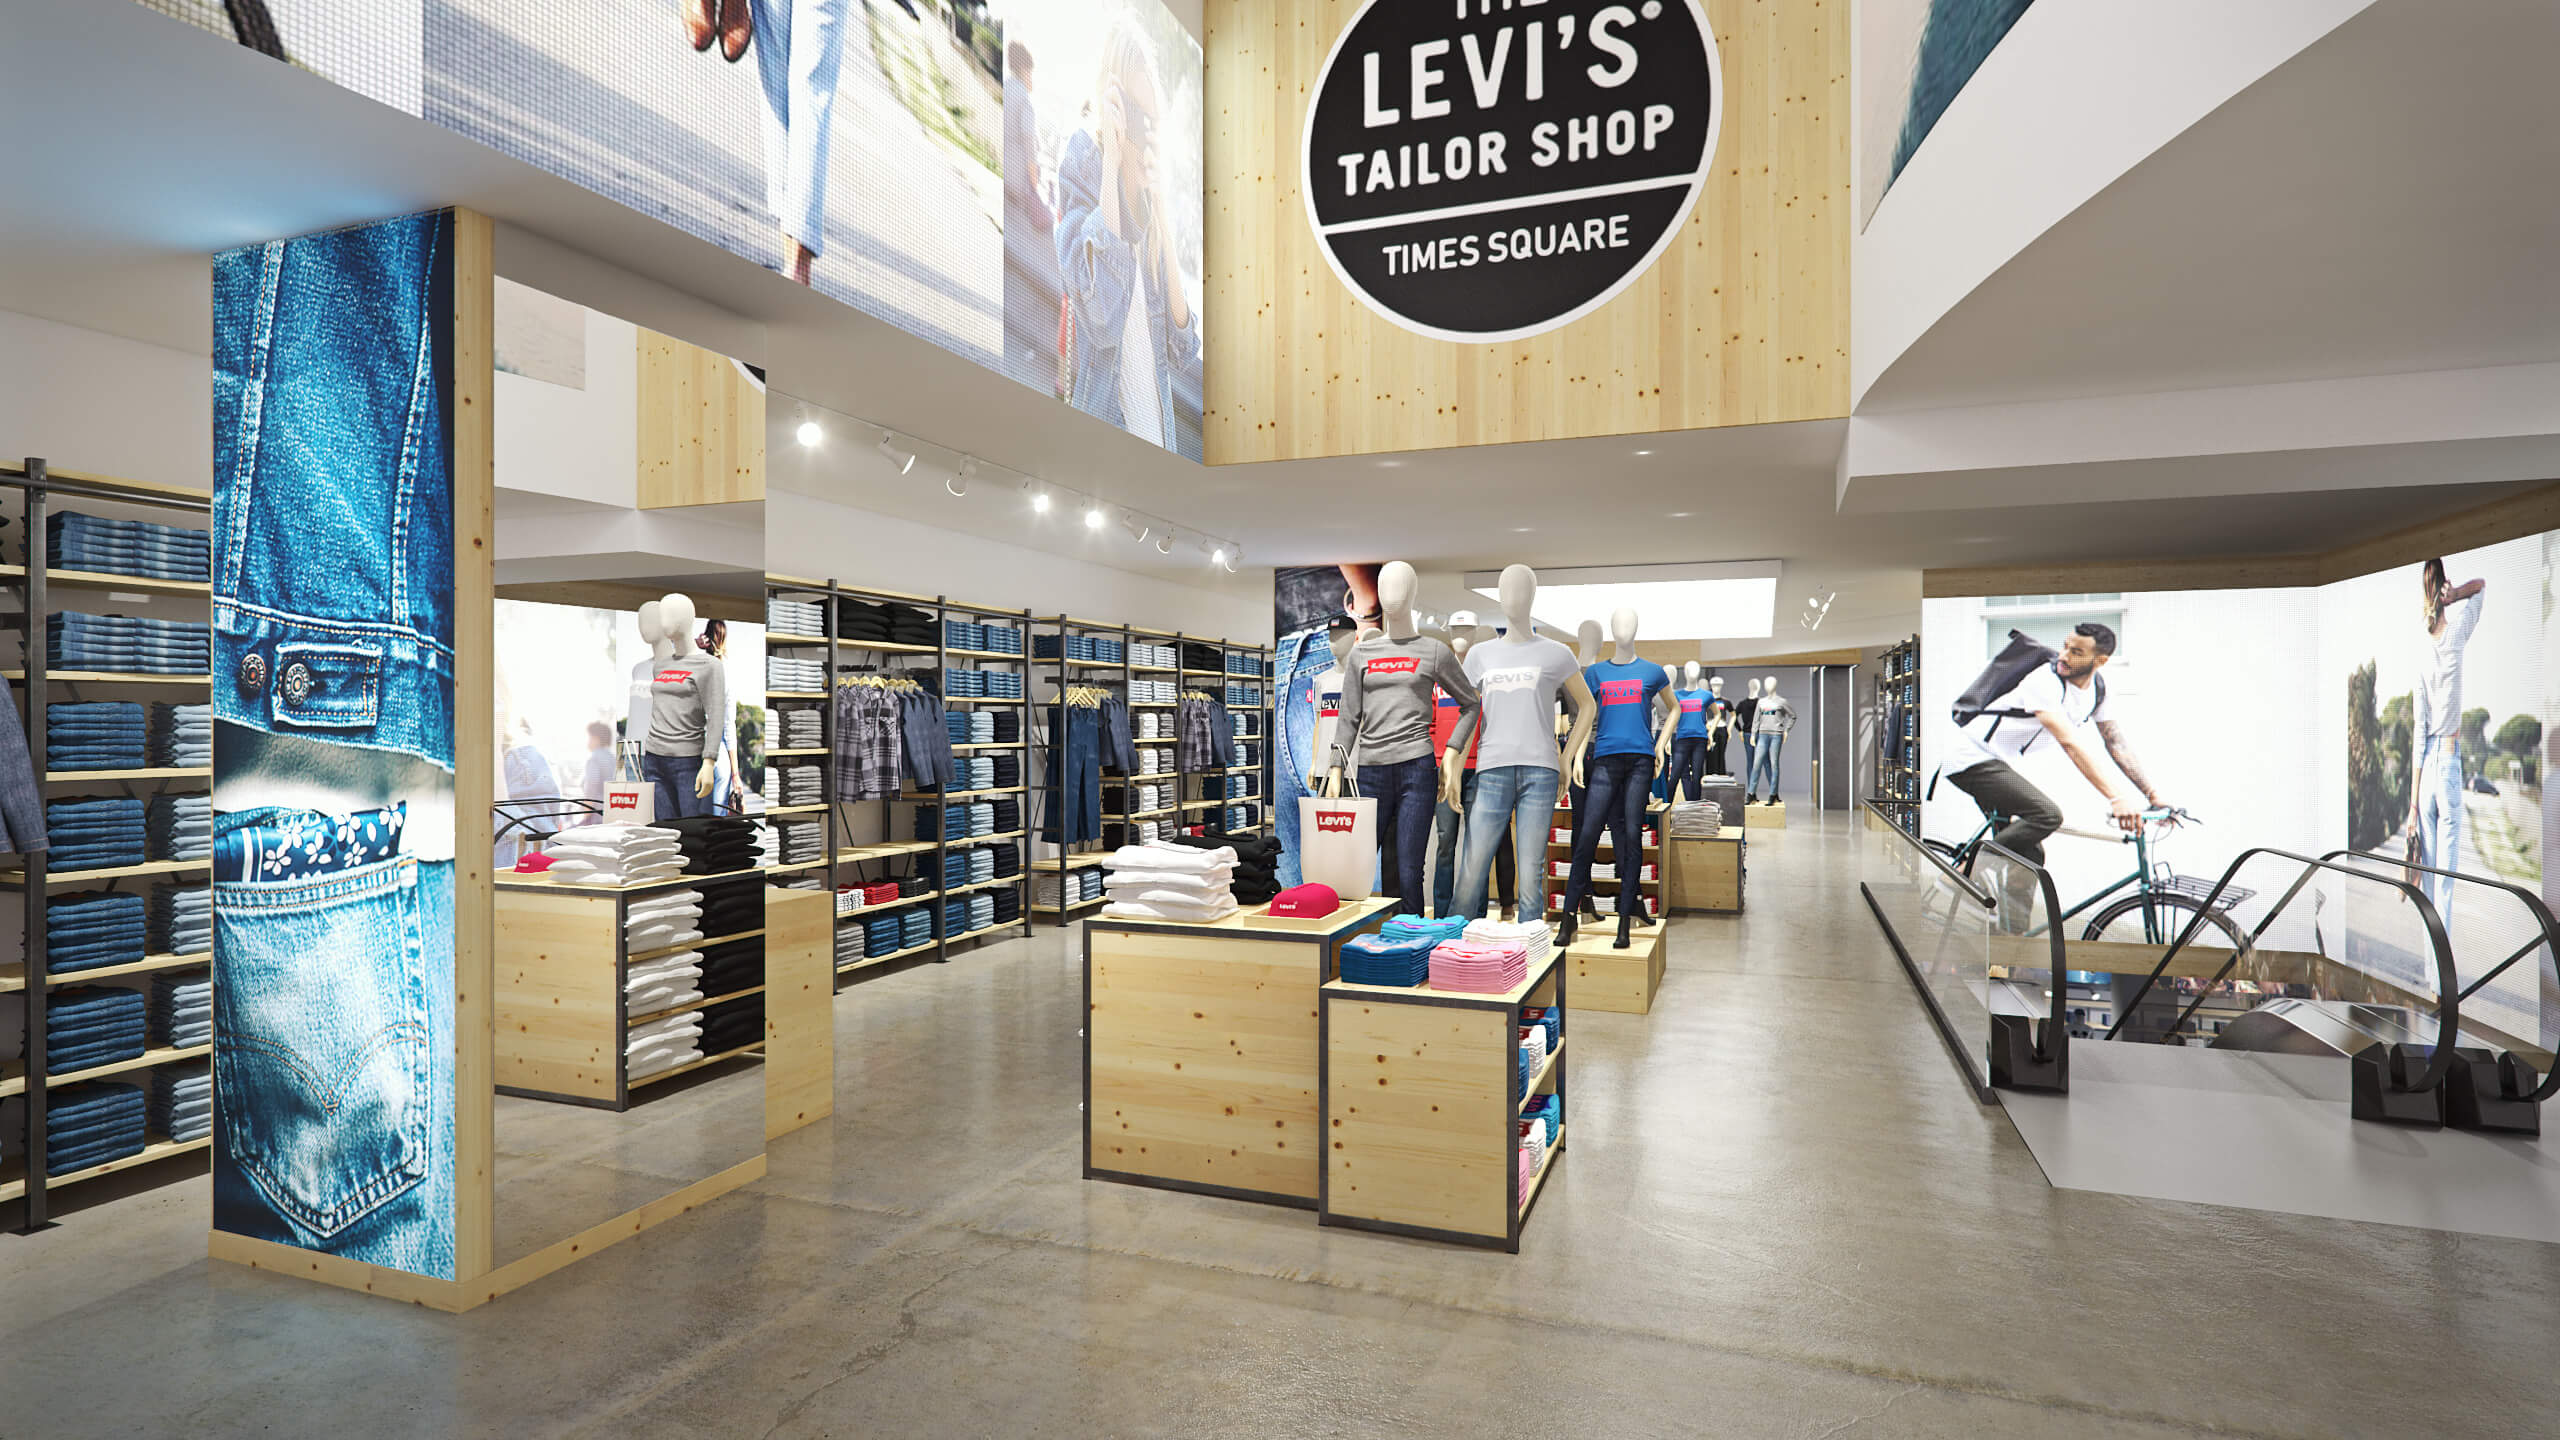 render vs real, Levi's, flagship, store, times square, new york city, interior, render, 3d, pixelpool, CAD